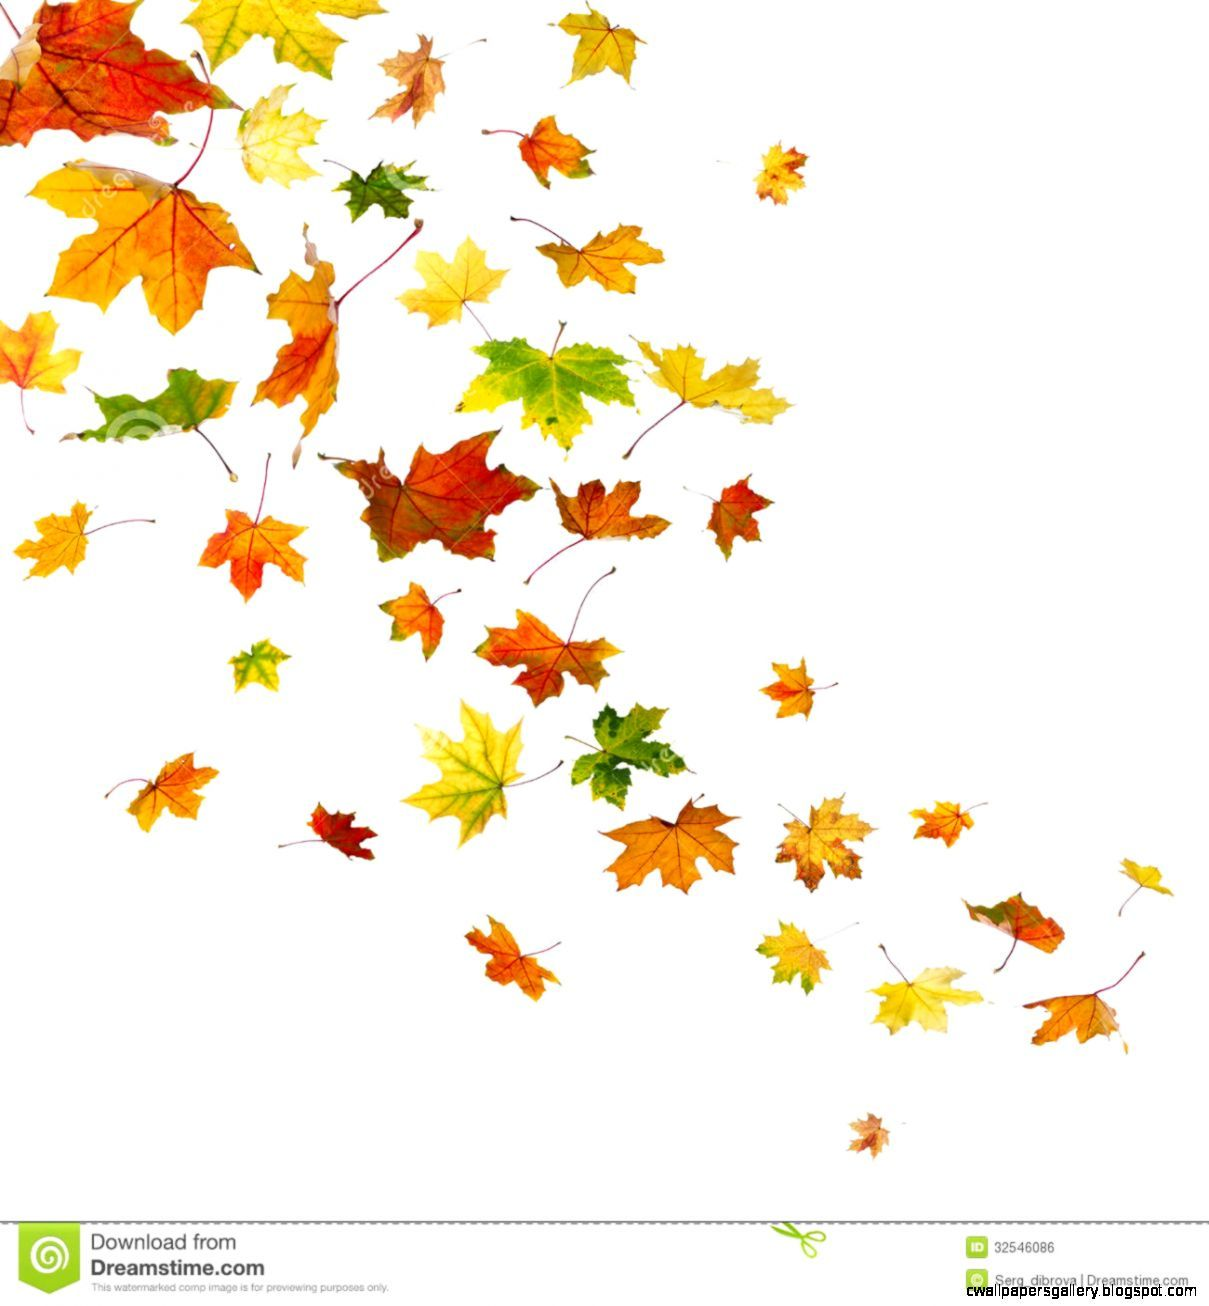 hight resolution of fall leaves falling autumn leaf colors red orange green yellow